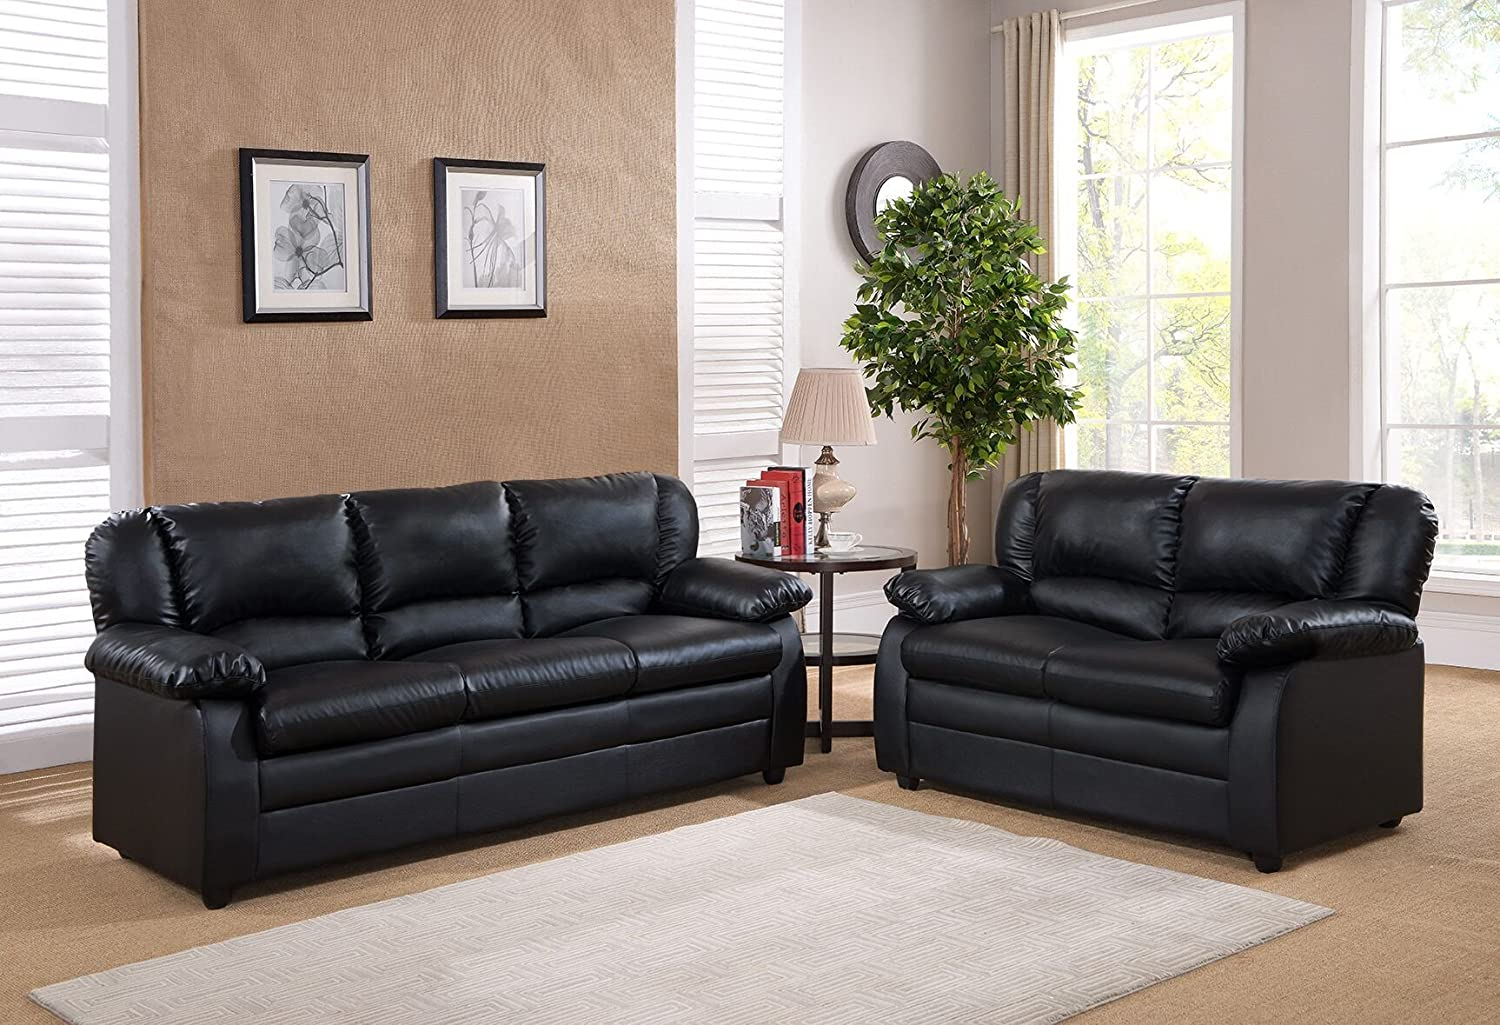 Kings Brand Furniture Vinyl Upholstered Living Room Set (Black - Sofa & Loveseat)